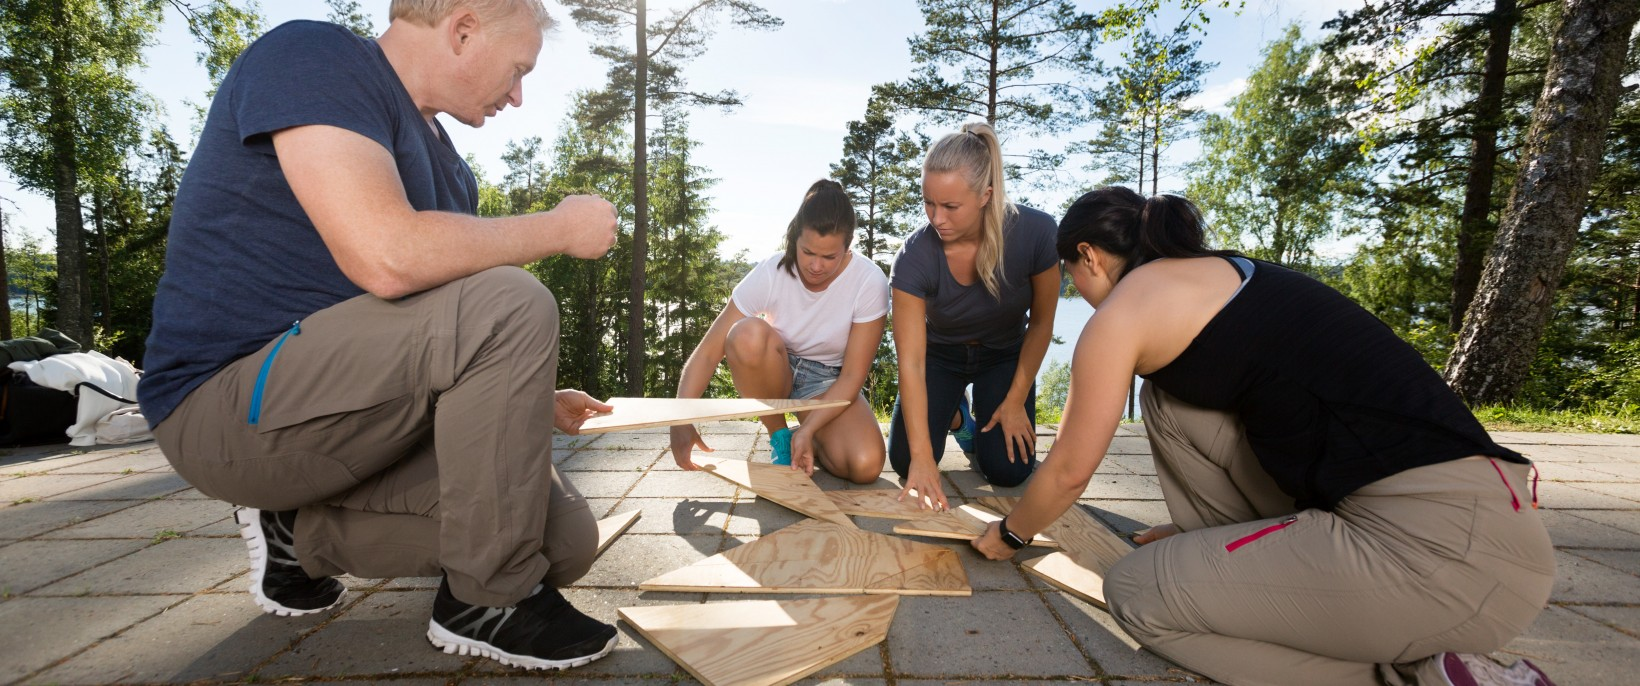 Male and female coworkers solving wooden plank puzzle on patio in forest